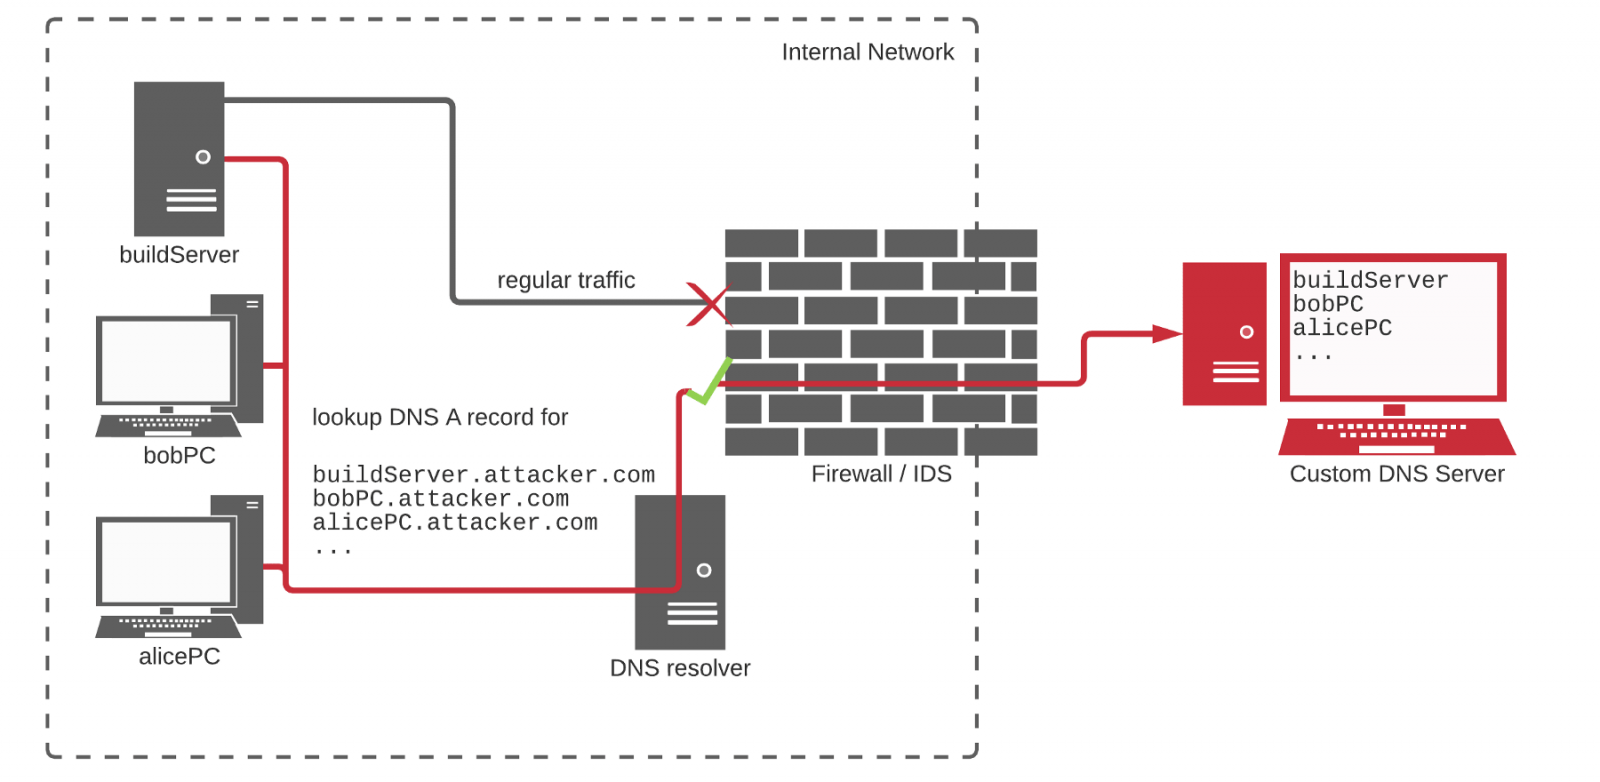 DNS used for reconstruction and data filtering